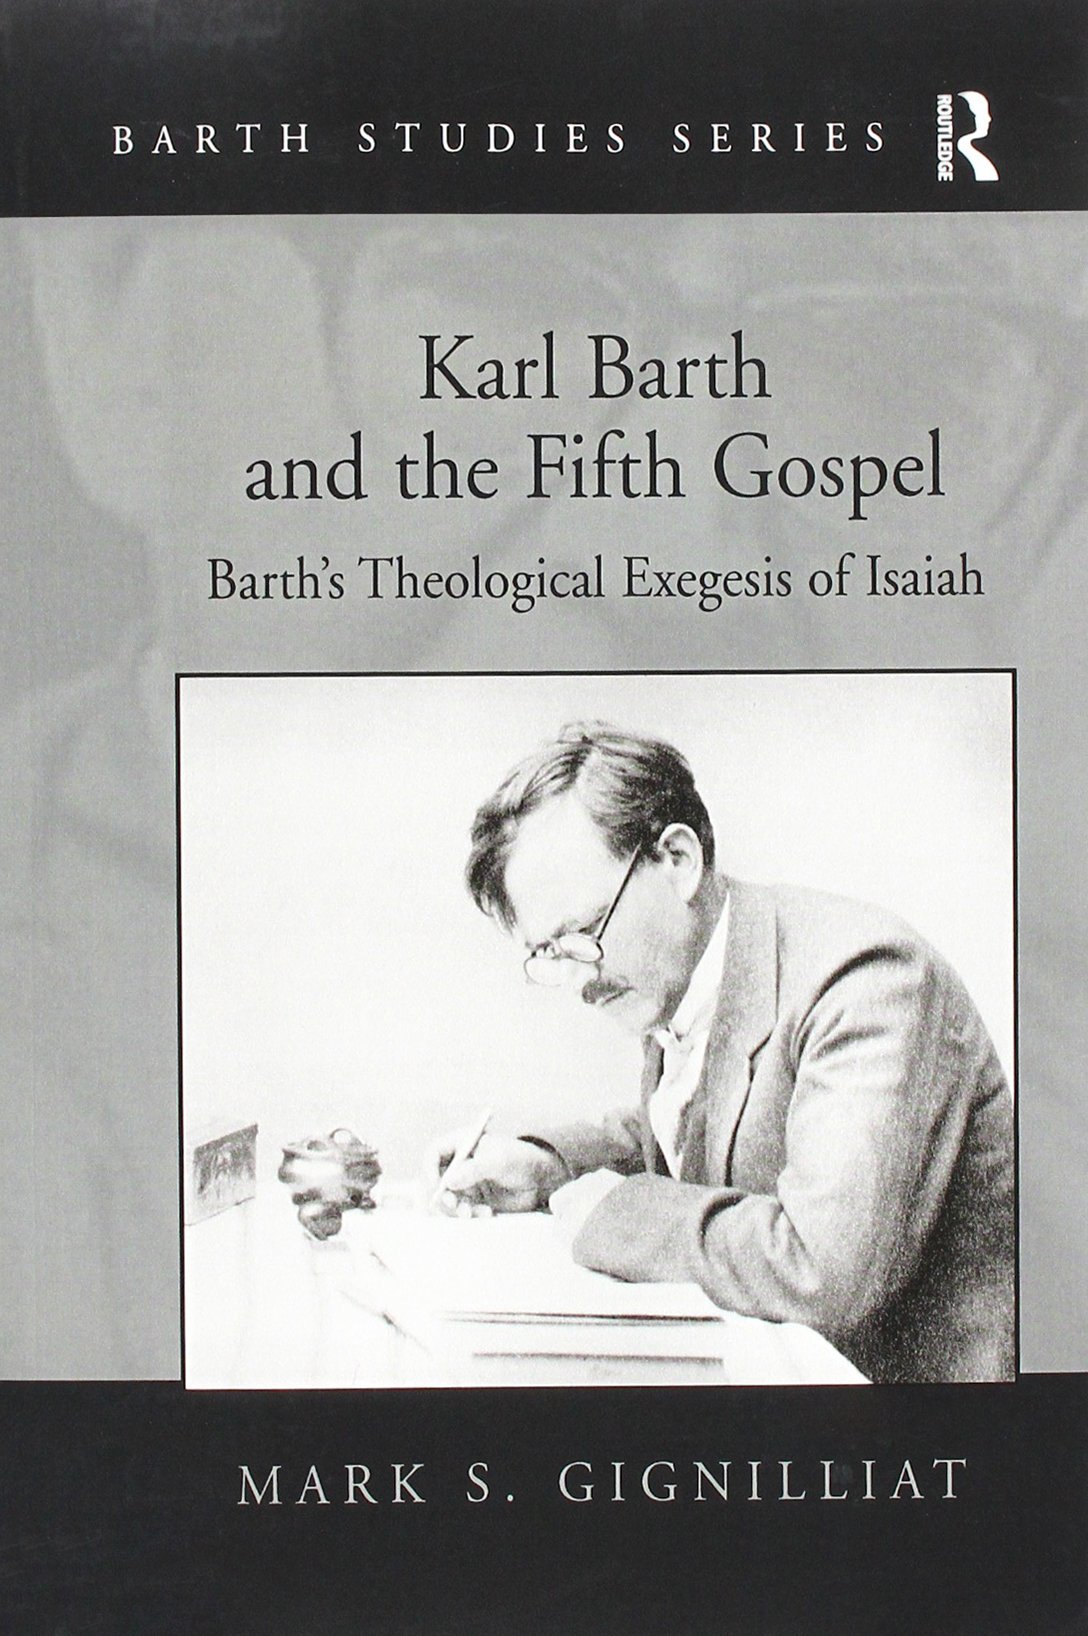 Karl Barth and the Fifth Gospel: Barth's Theological Exegesis of Isaiah (Barth Studies) pdf epub